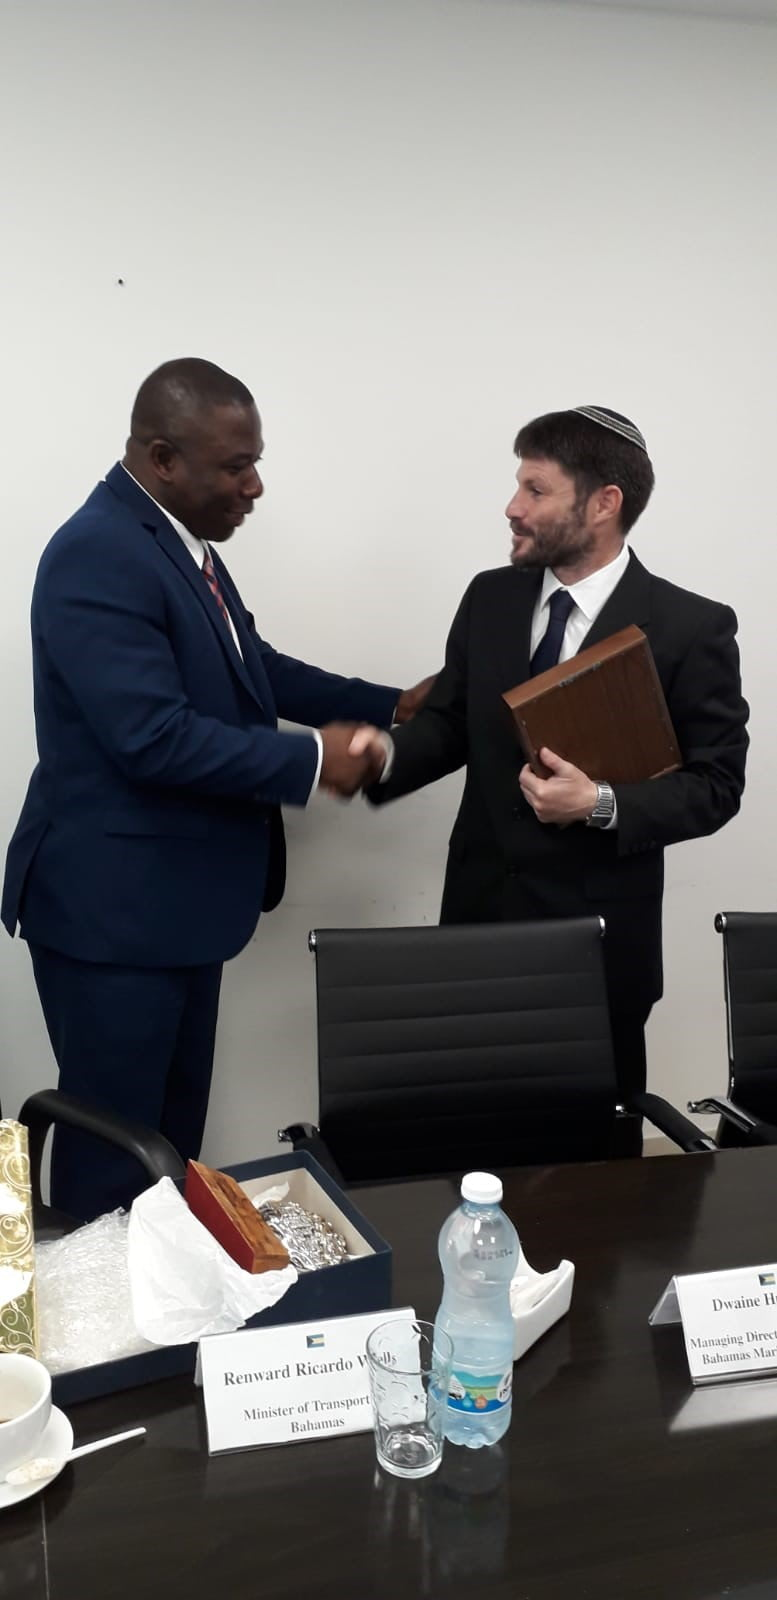 Israeli minister of transport meets with Renward Wells